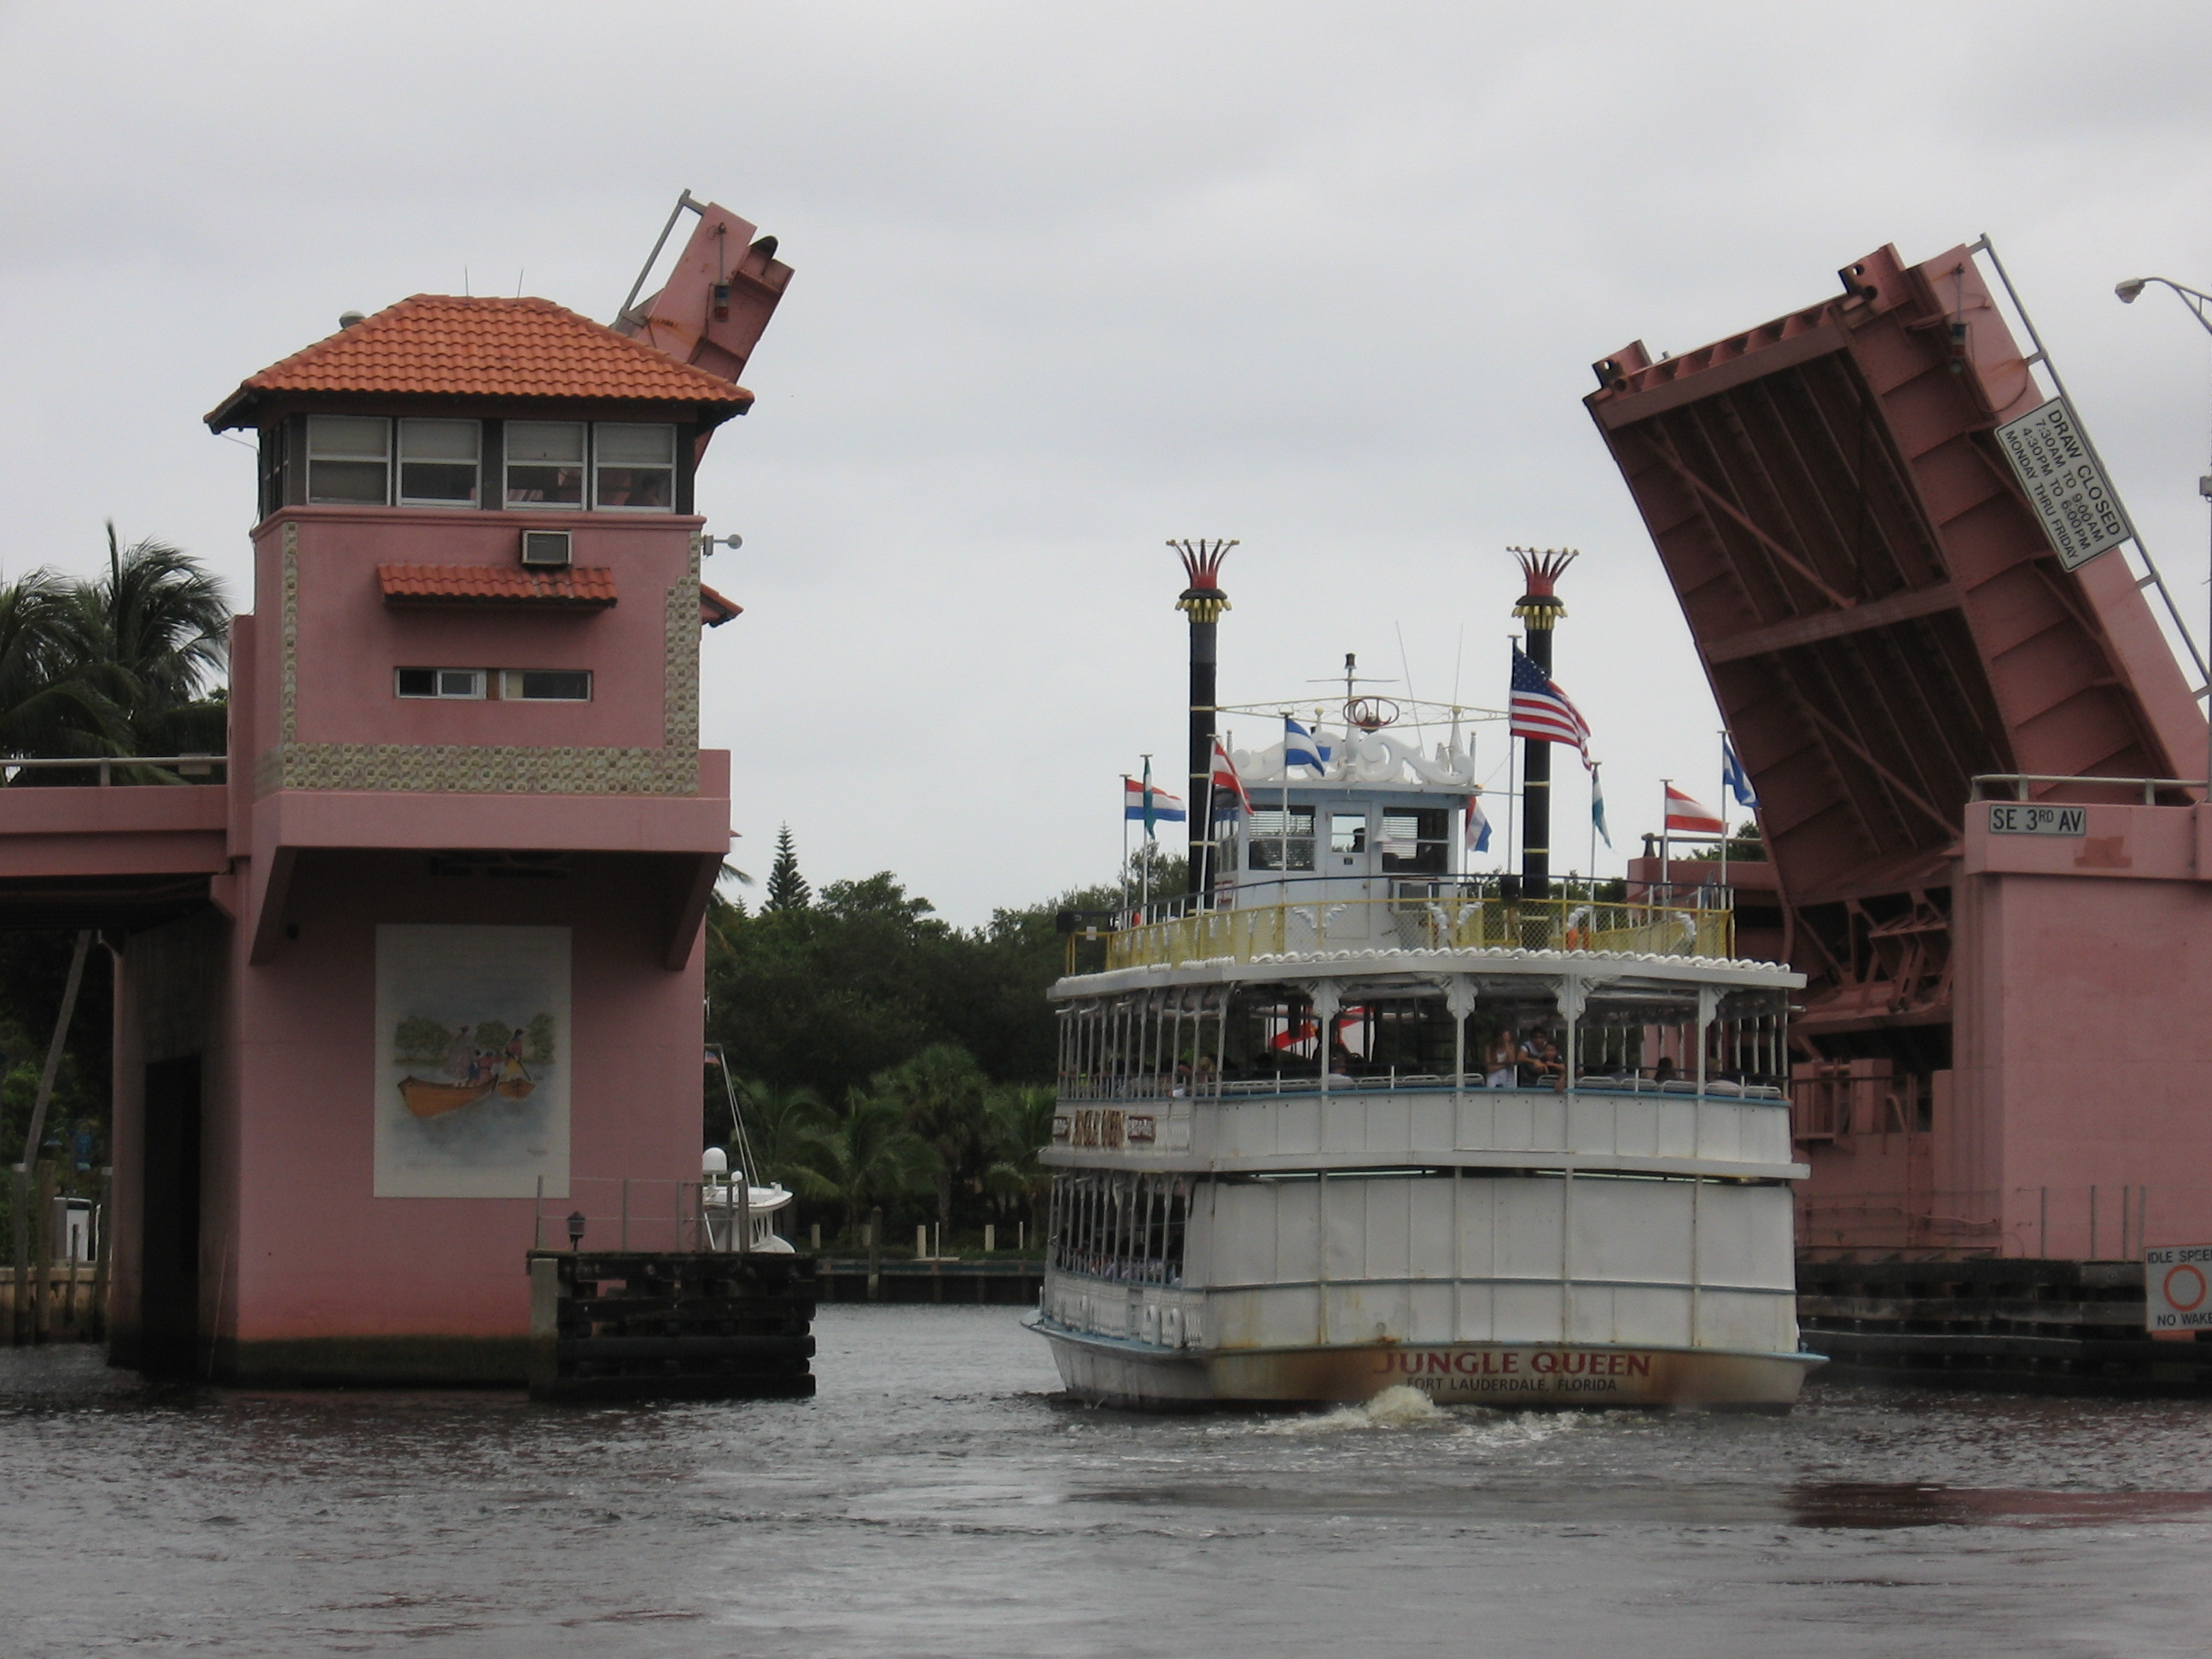 Navigating the new river fort lauderderdale the jungle queen heads eastward through the 3rd ave bridge towards the icw geenschuldenfo Images